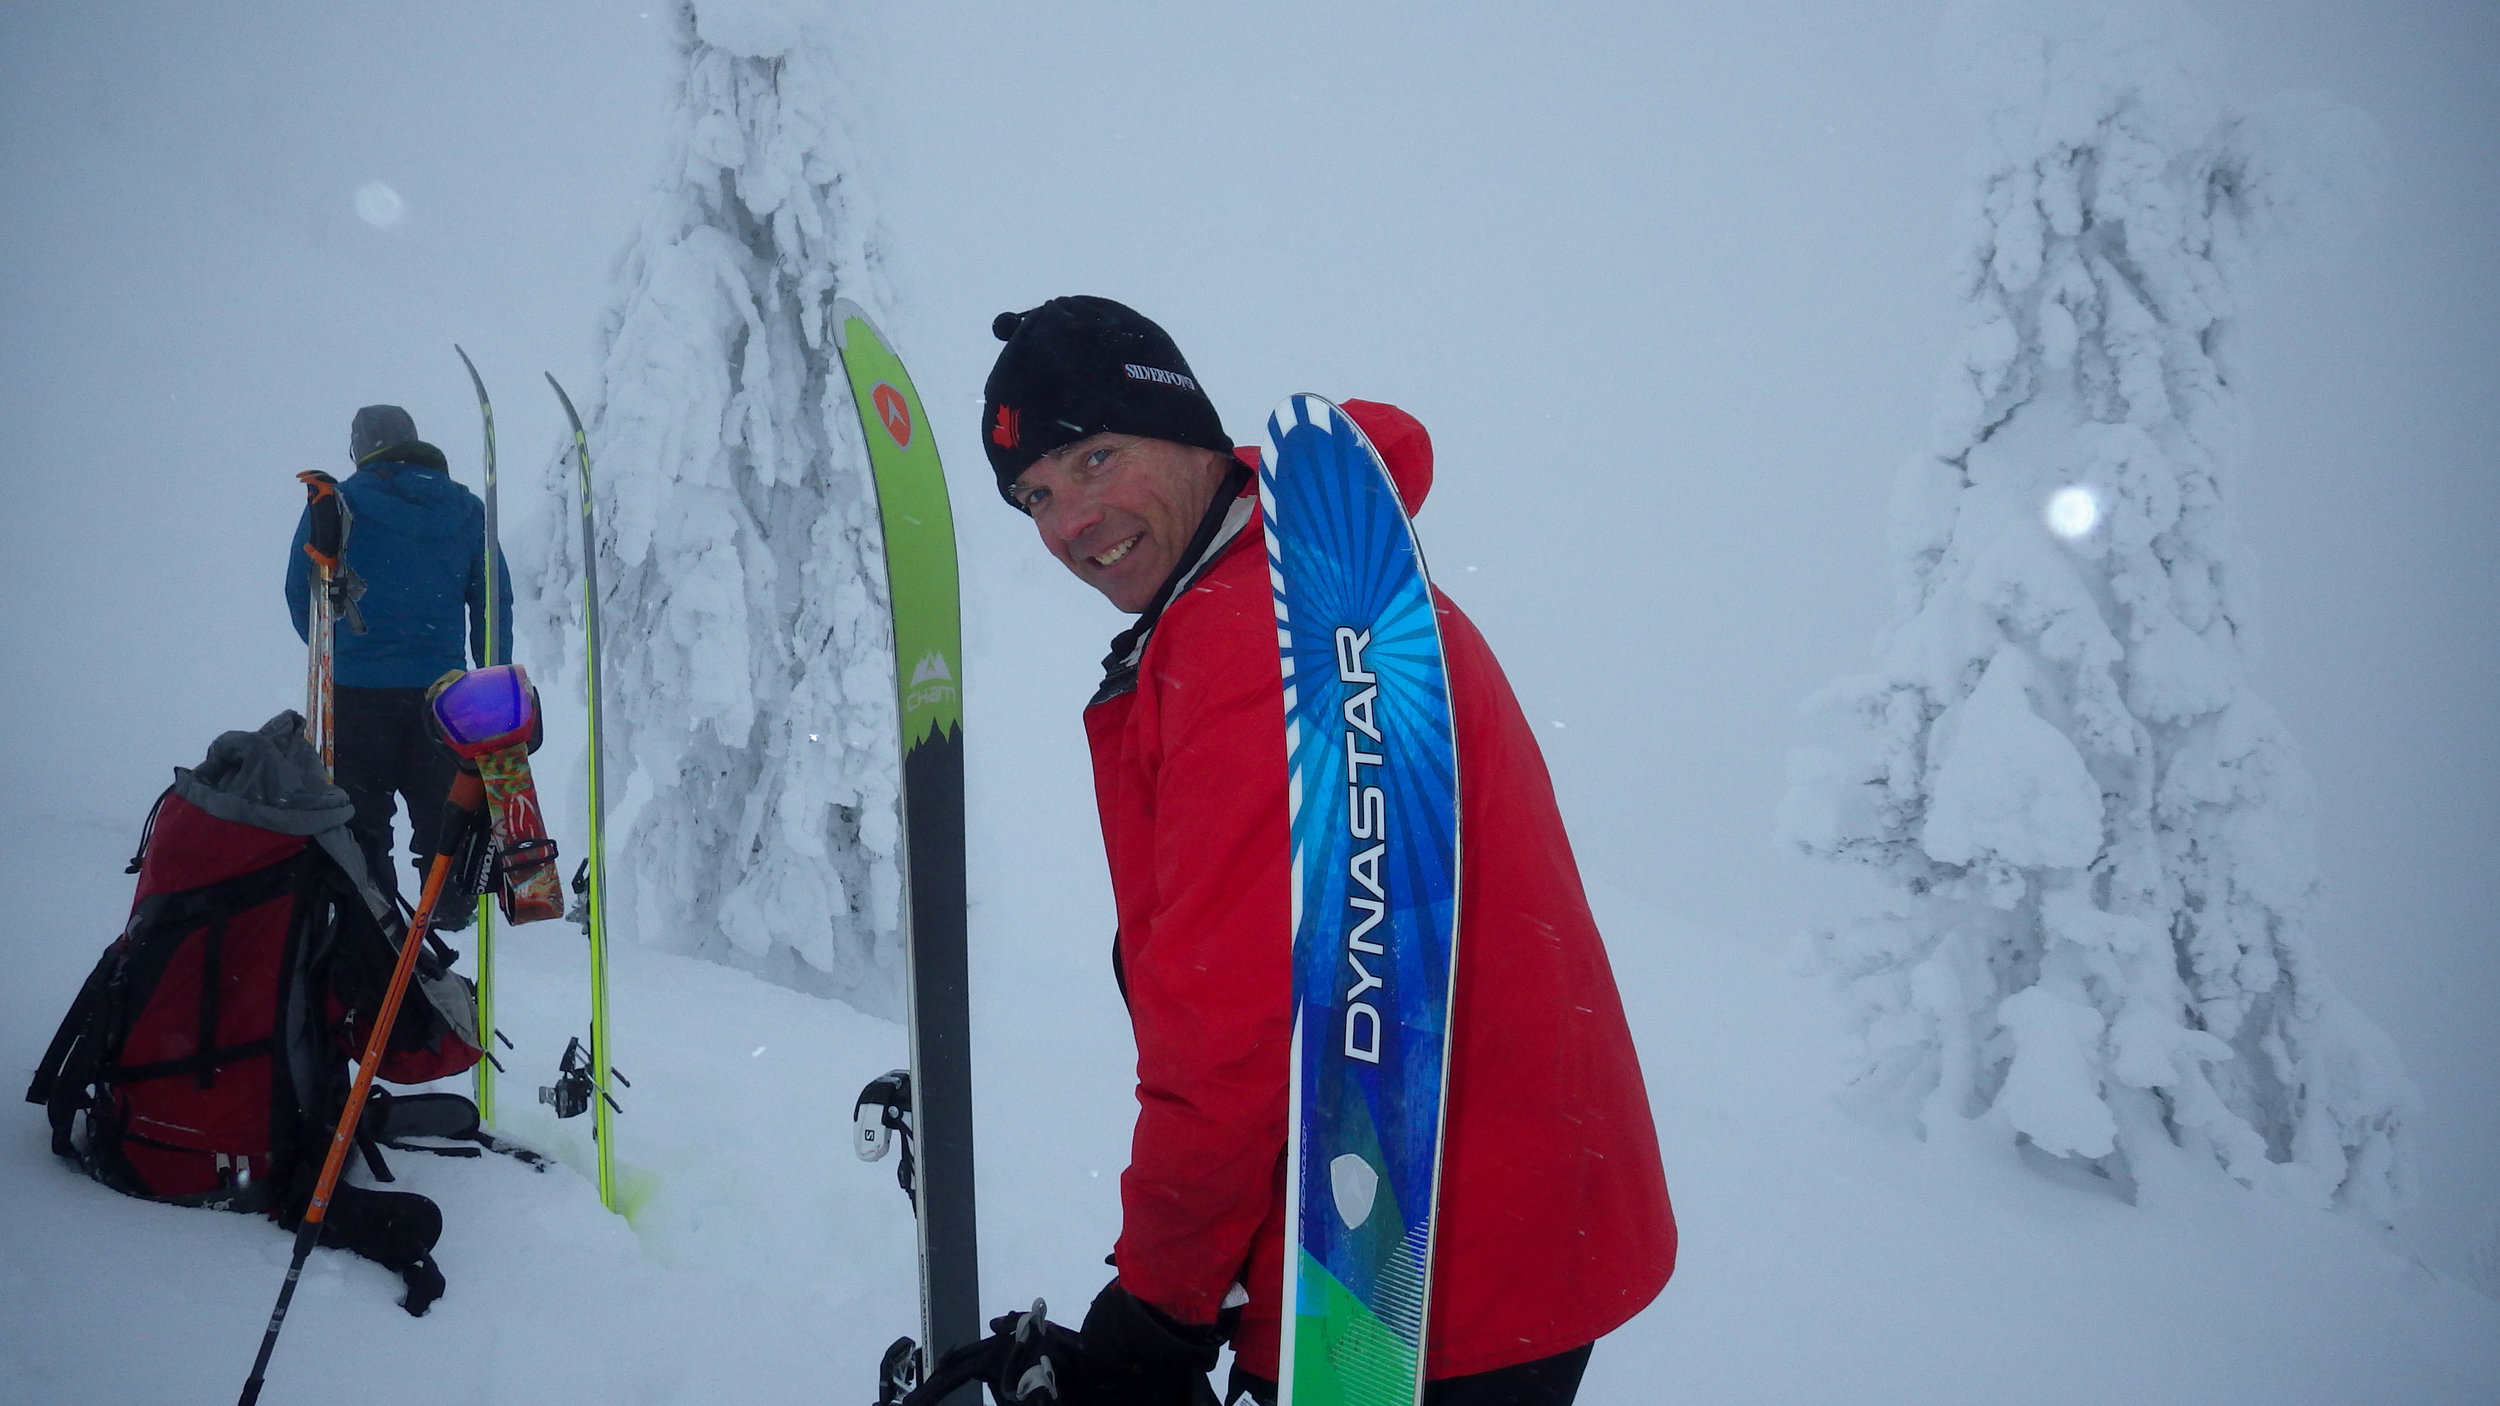 Getting ready to ski after skinning up at Whitewater